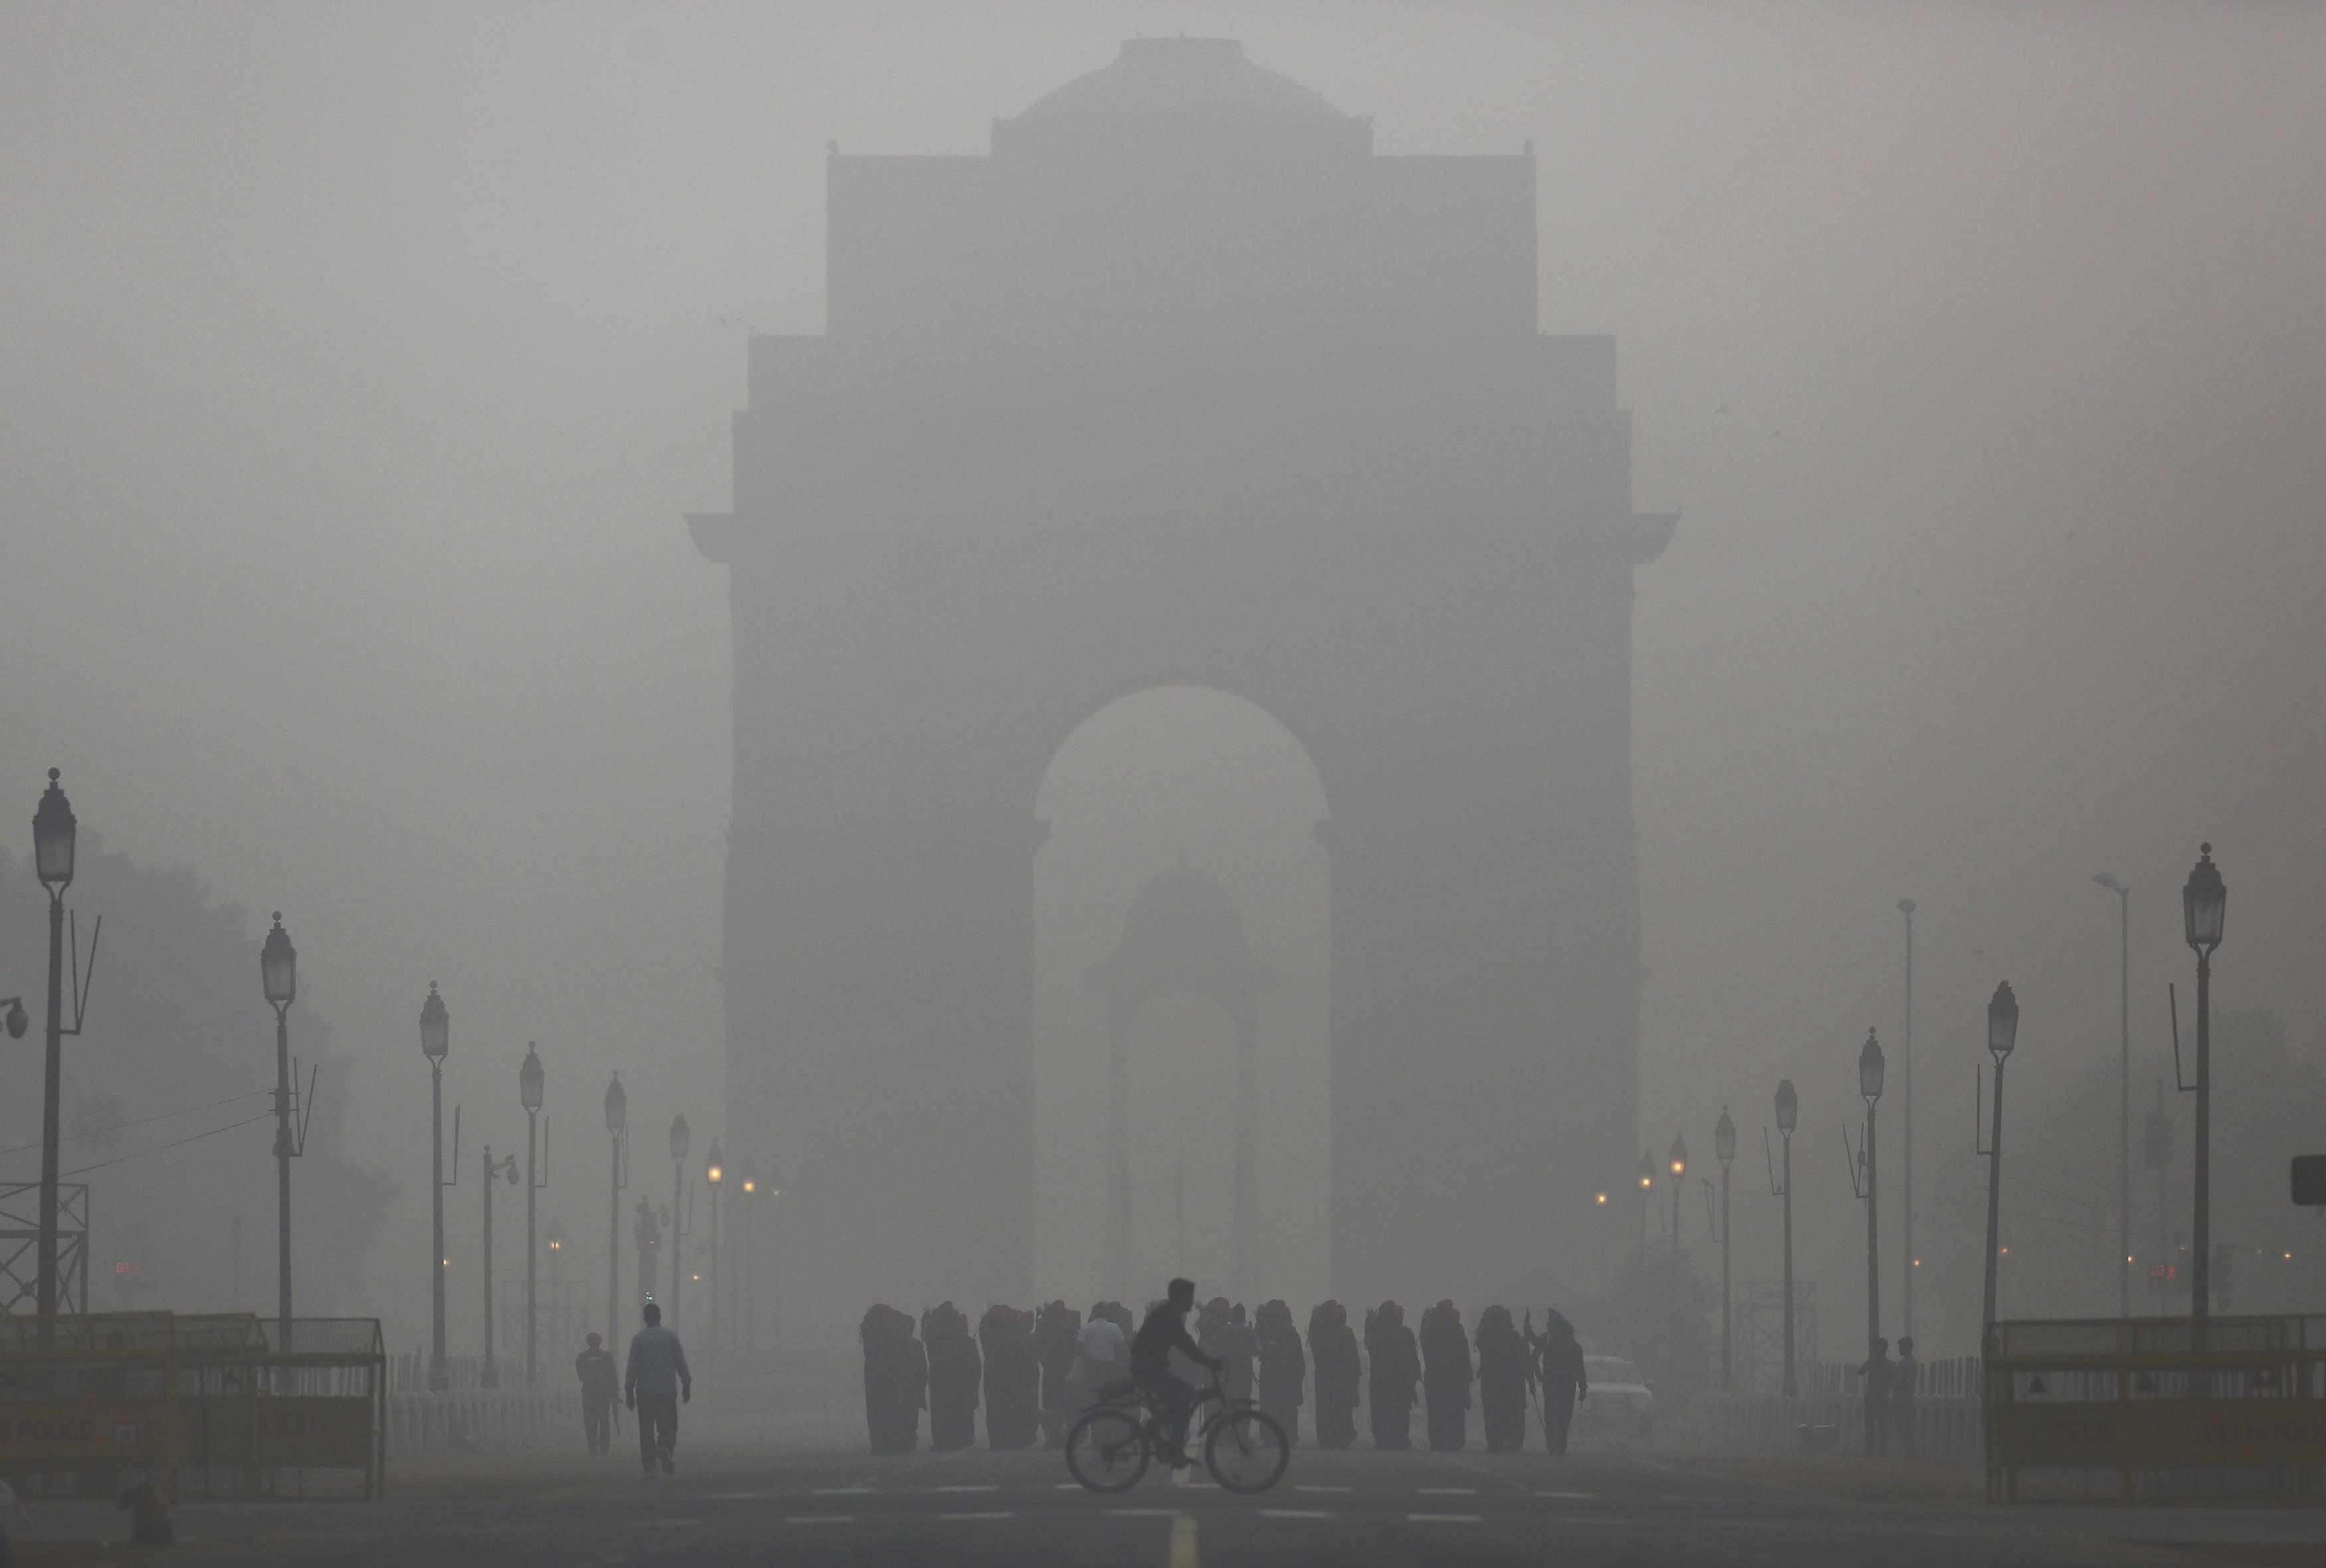 A man rides his bicycle next to Indian soldiers marching in front of India Gate on a smoggy morning in New Delhi, India, December 1, 2015. Photo: Reuters/Anindito Mukherjee